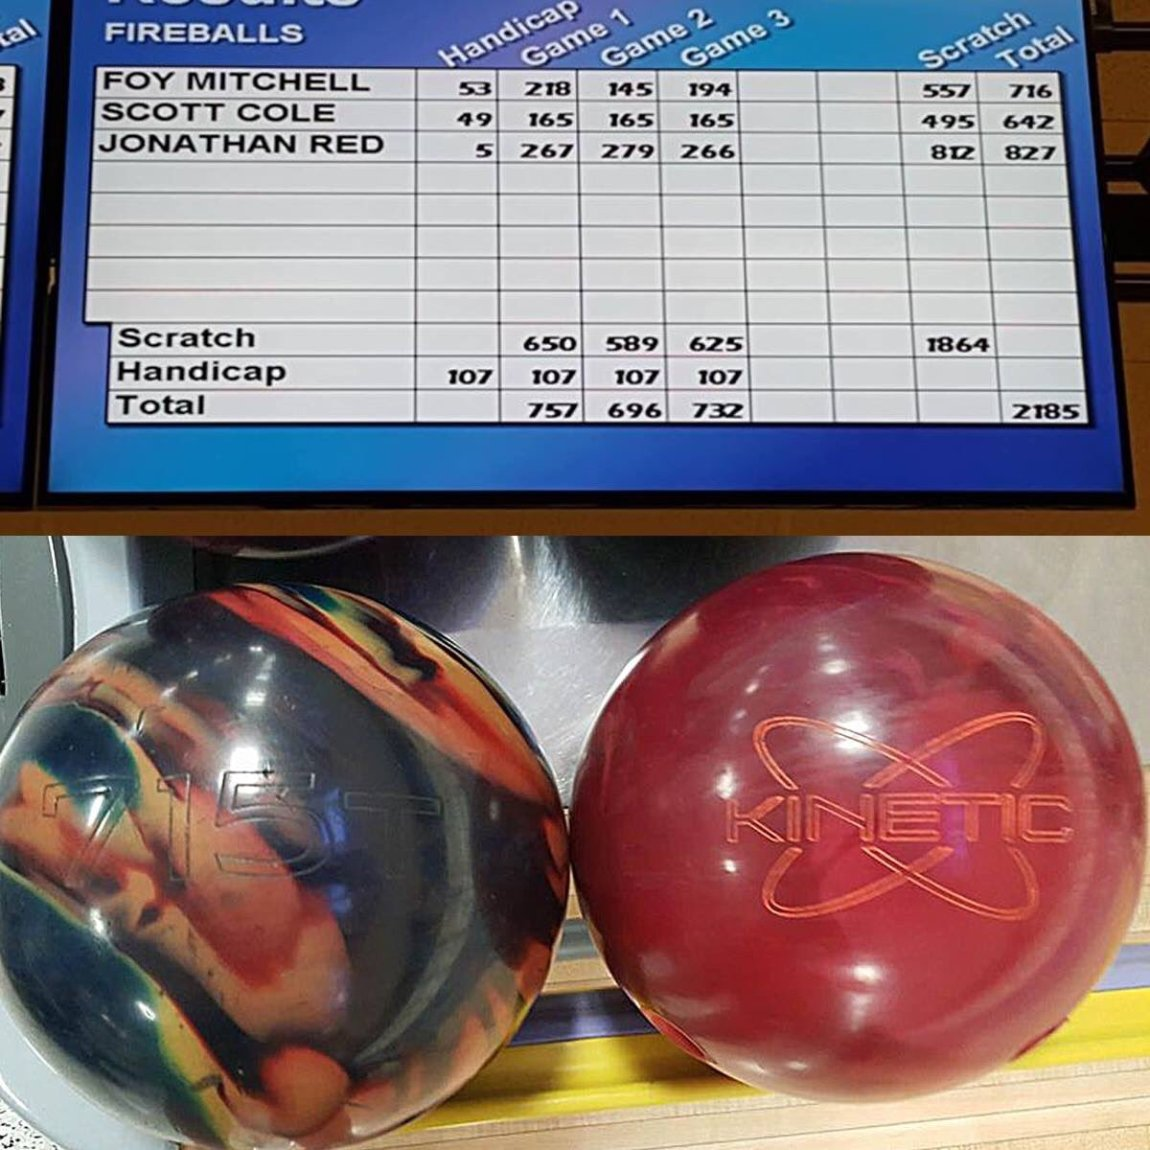 test Twitter Media - Jonathan Redfield debated for a week then chose the Kinetic Ruby and fired 812 out of the box! Smart choice Jonathan! #TrackBowling https://t.co/odtlaPCyz9